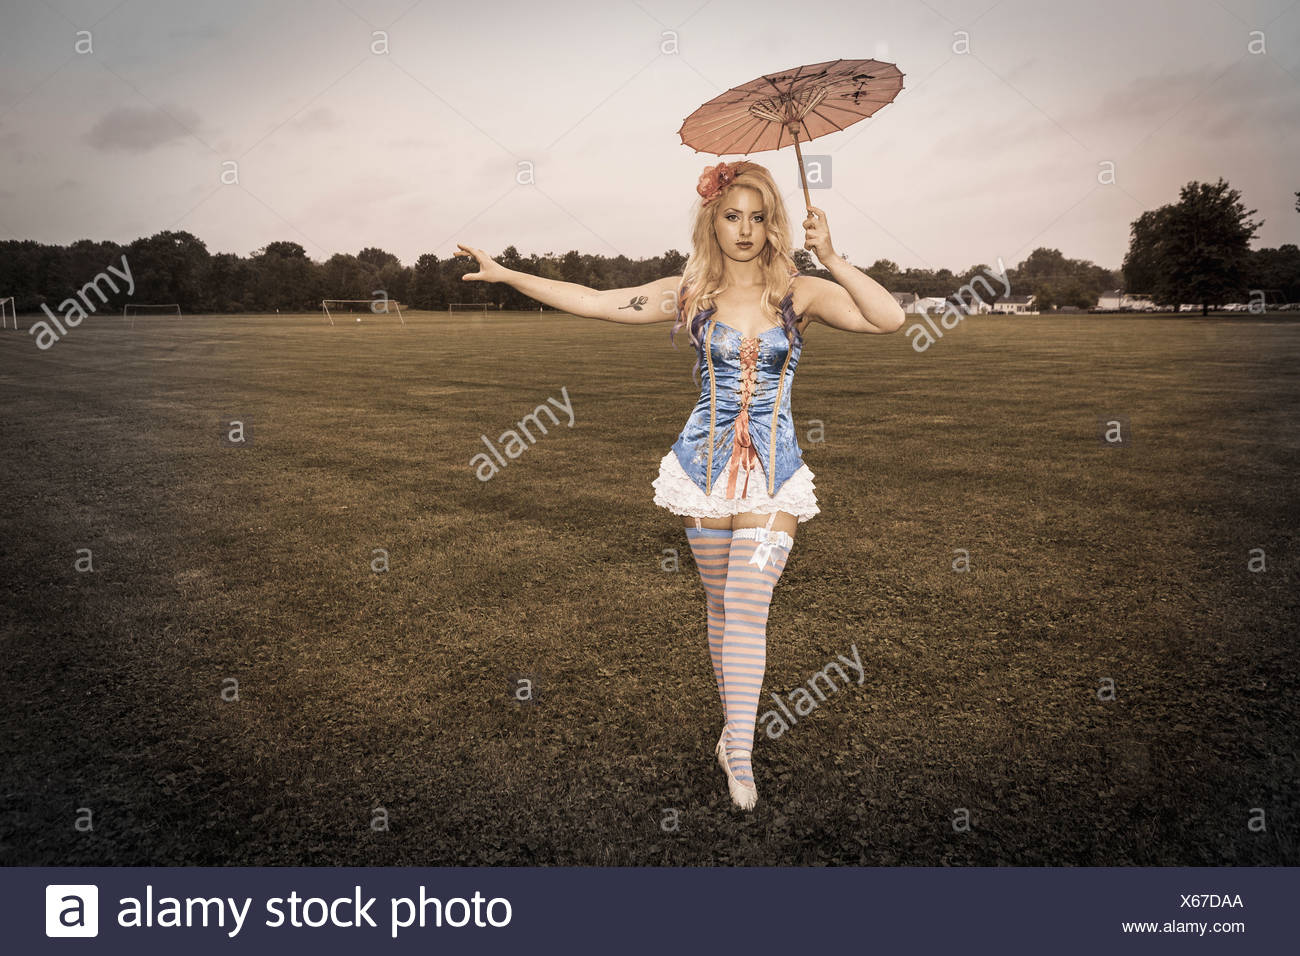 A woman wearing a laced basque, stockings and suspenders, holding an umbrella A carnival circus outfit - Stock Image